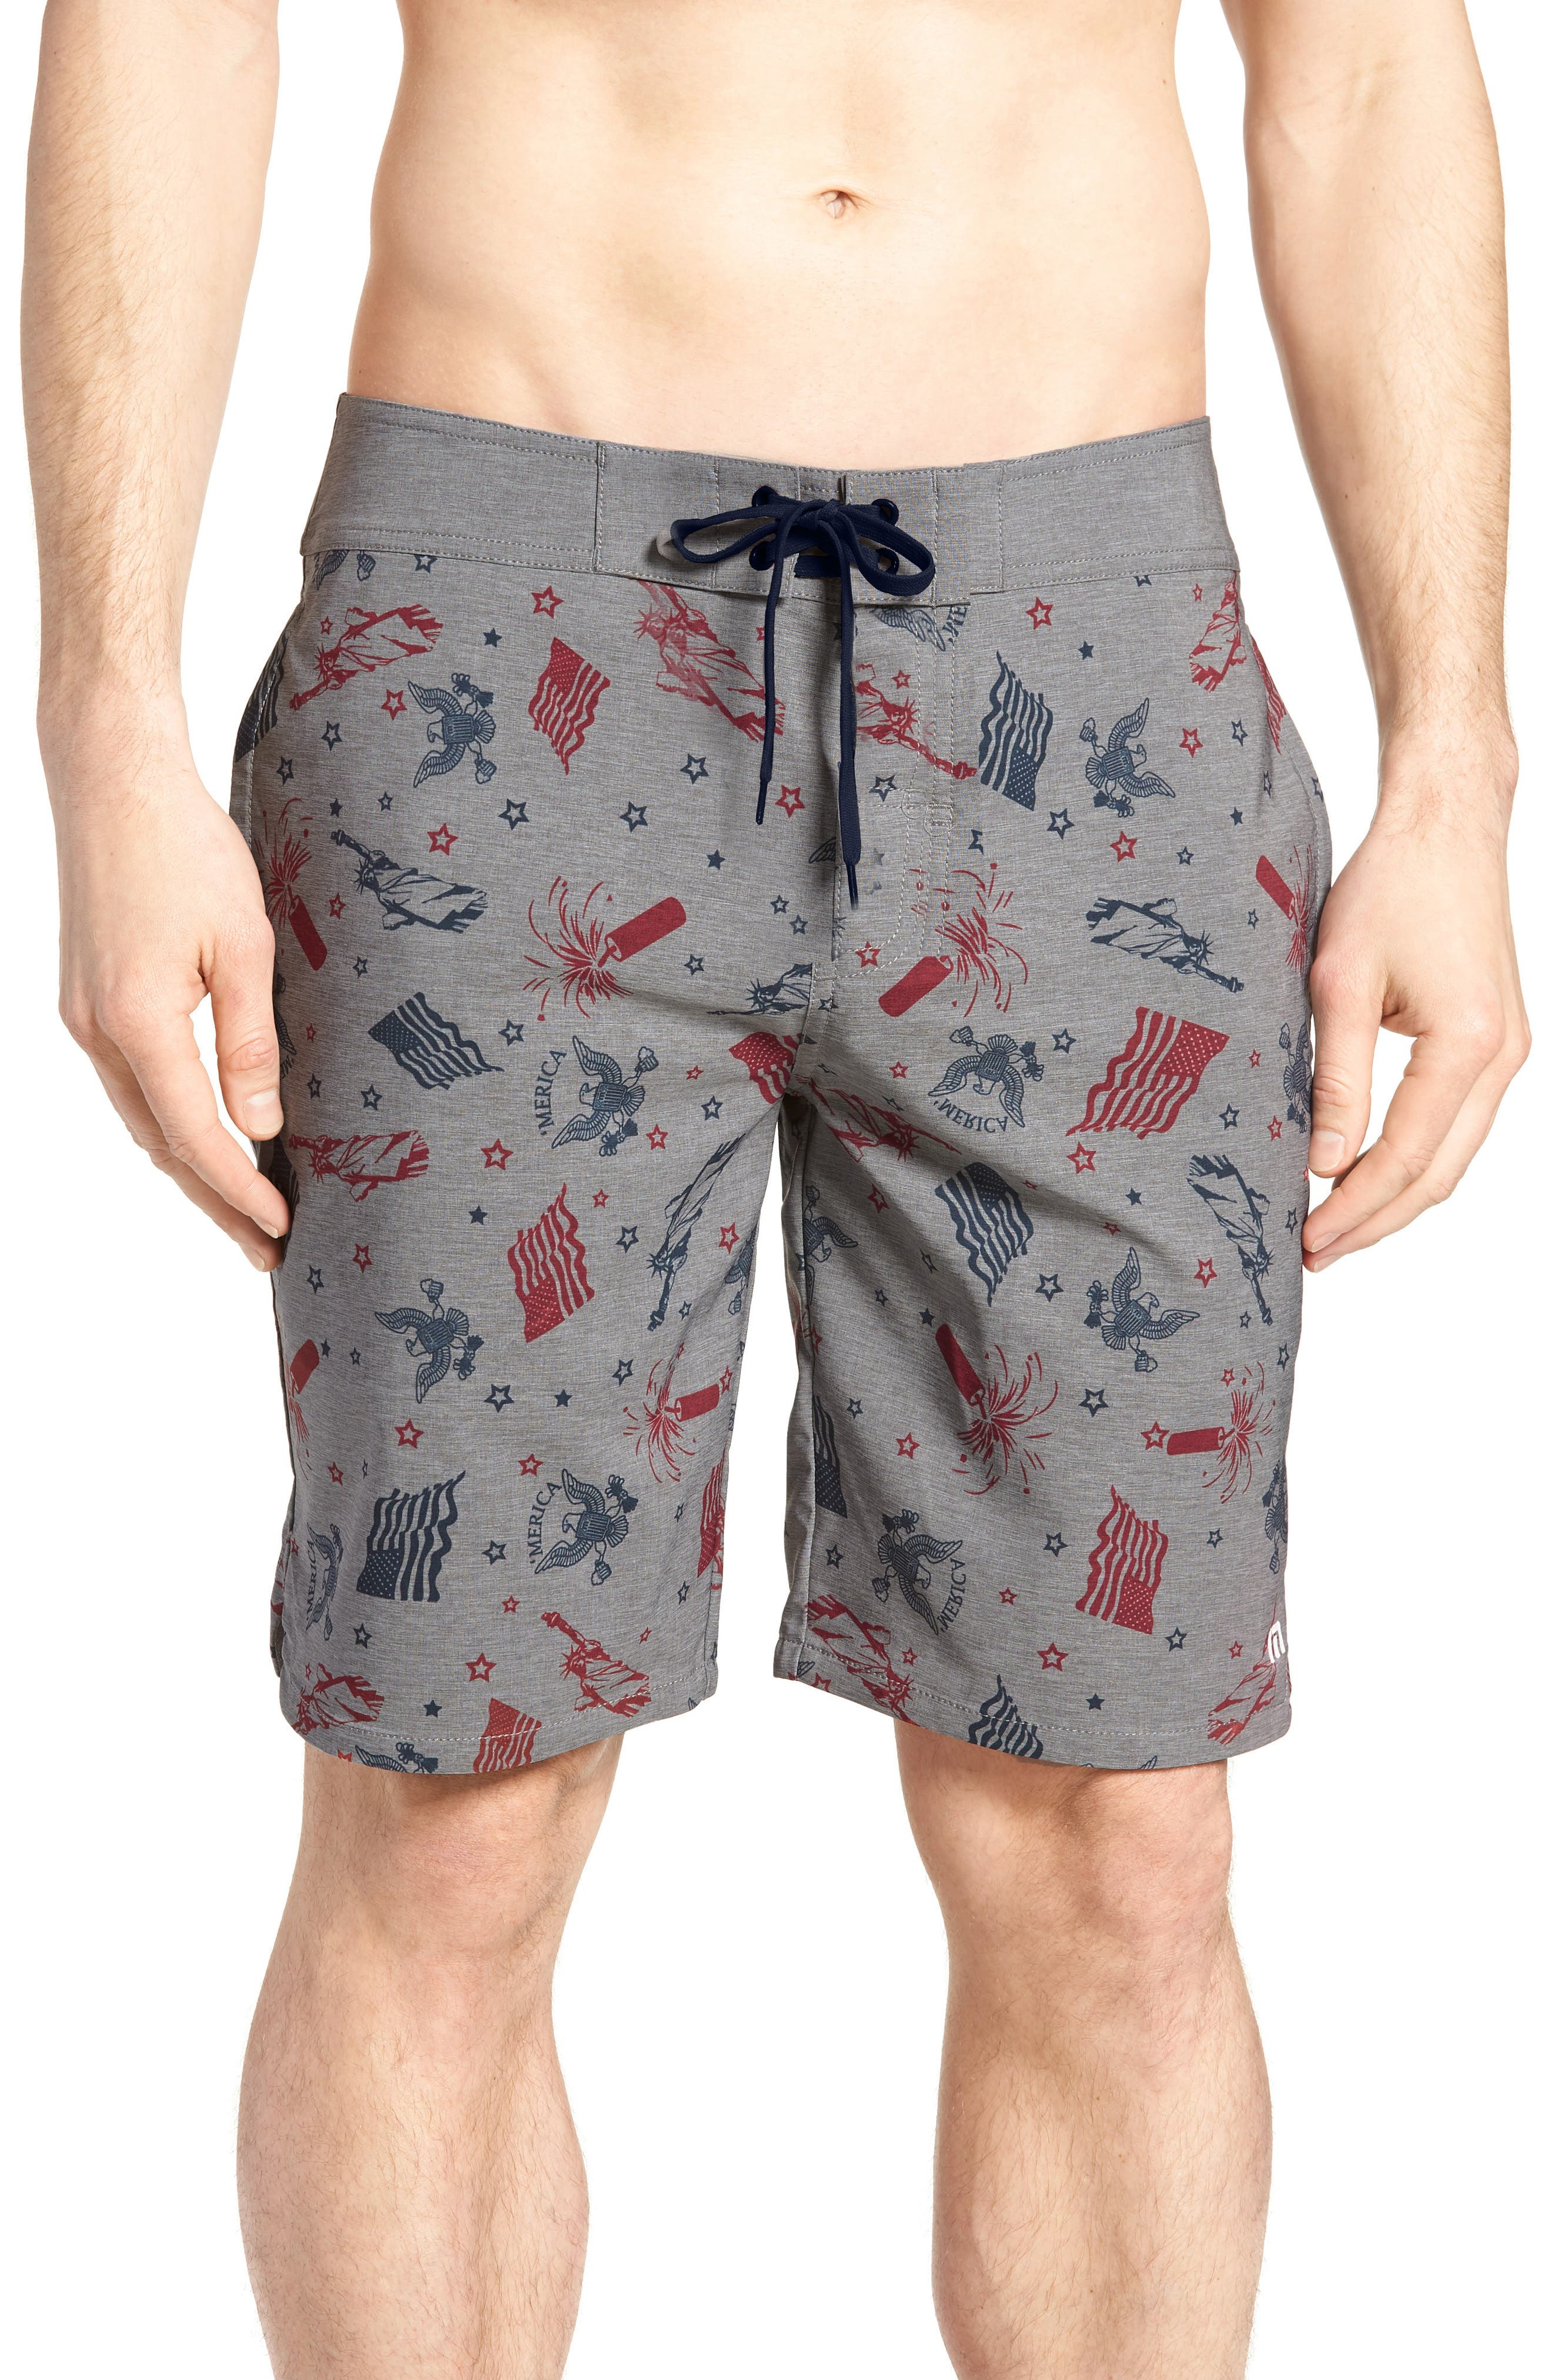 Liberty Swim Trunks,                         Main,                         color, 020